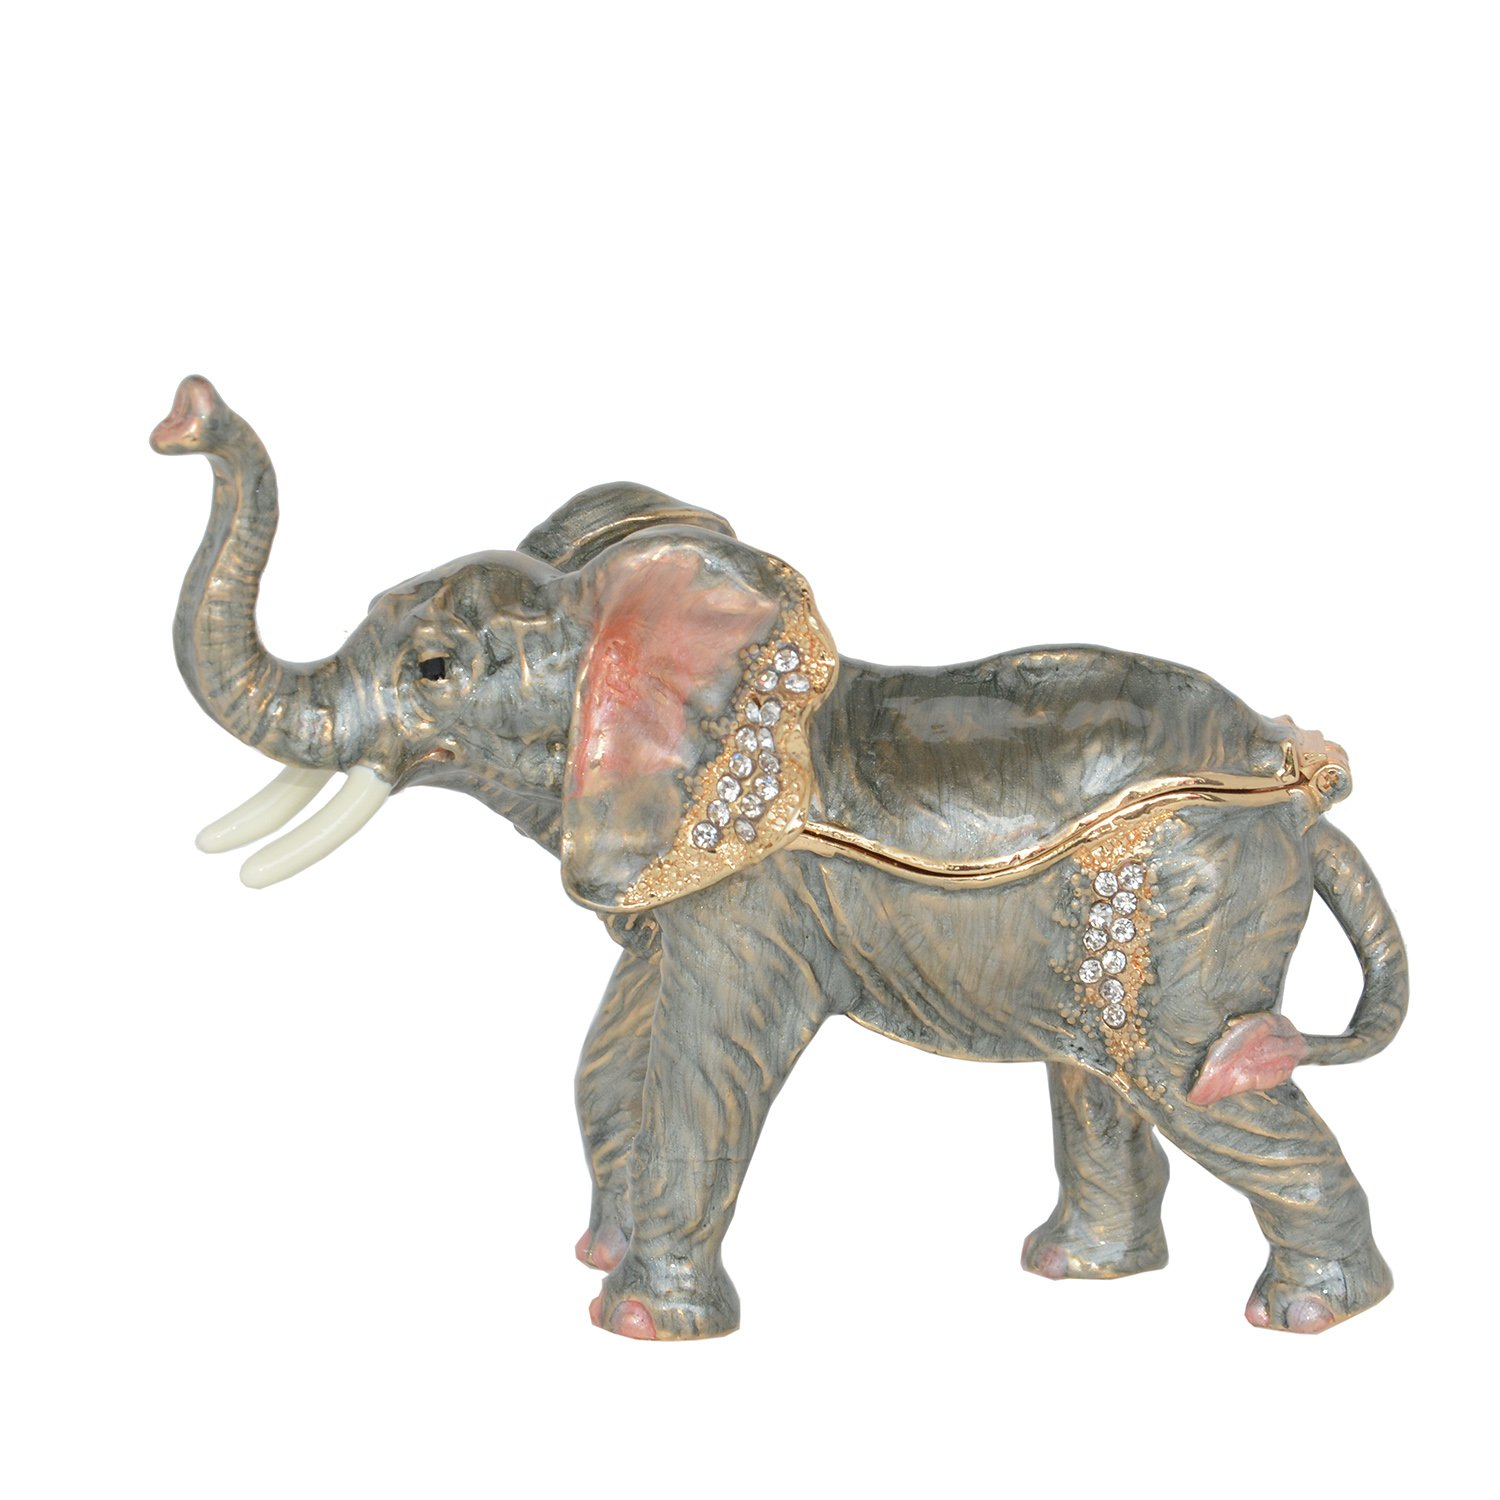 Minihouse Elephant Treasured Trinket Jewelry Ring Box Necklace Container Crystal Jeweled Collectible Gifts for Lovers (Grey) by Minihouse (Image #3)